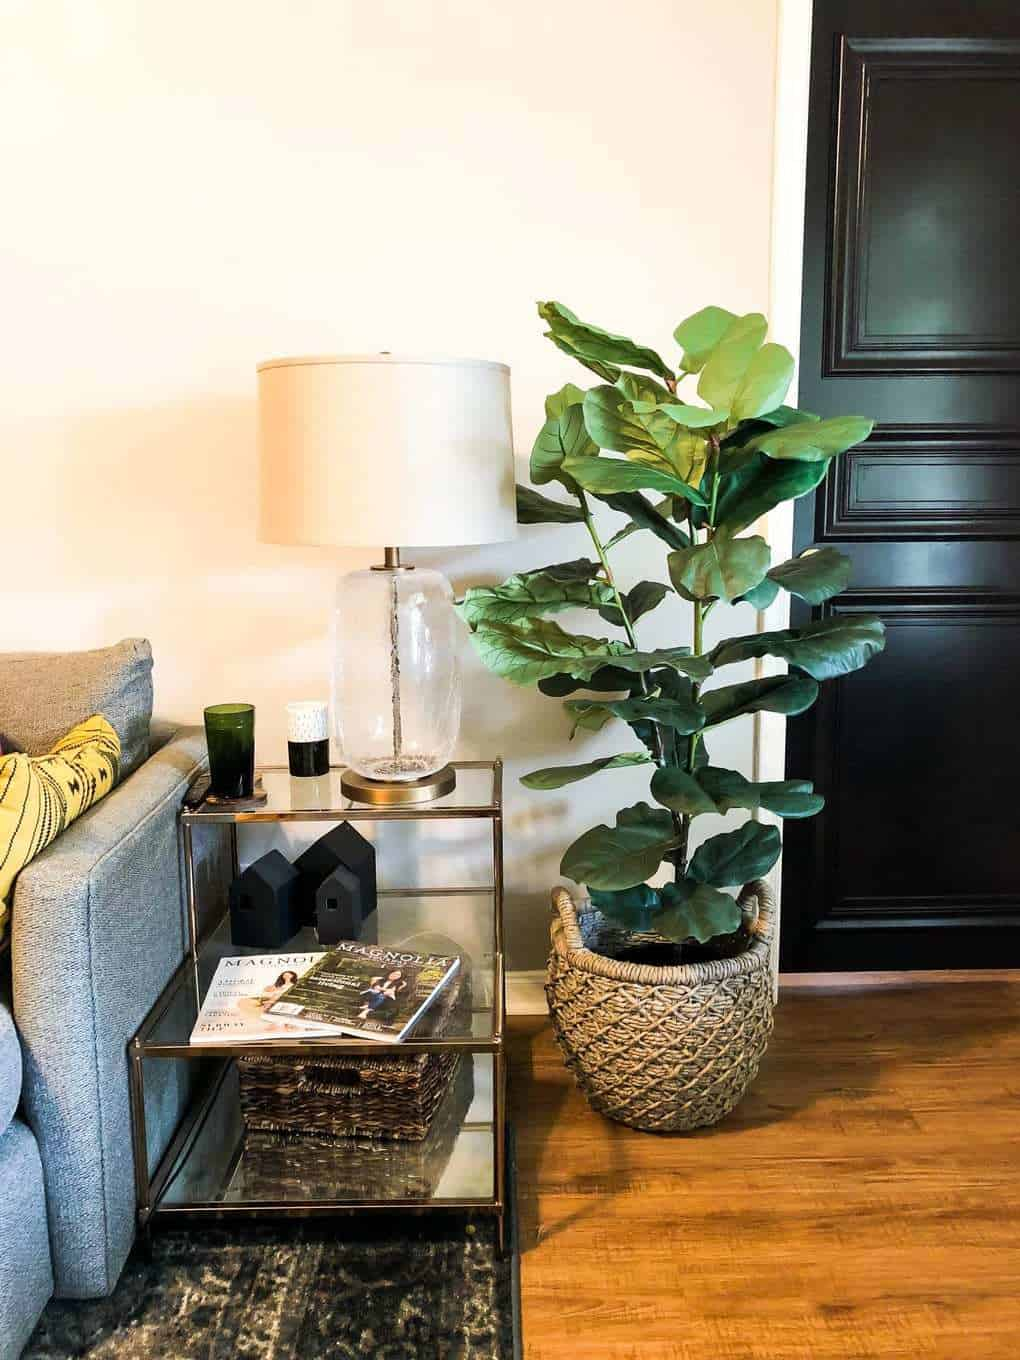 A faux fiddle leaf fig sitting next to a couch and side table